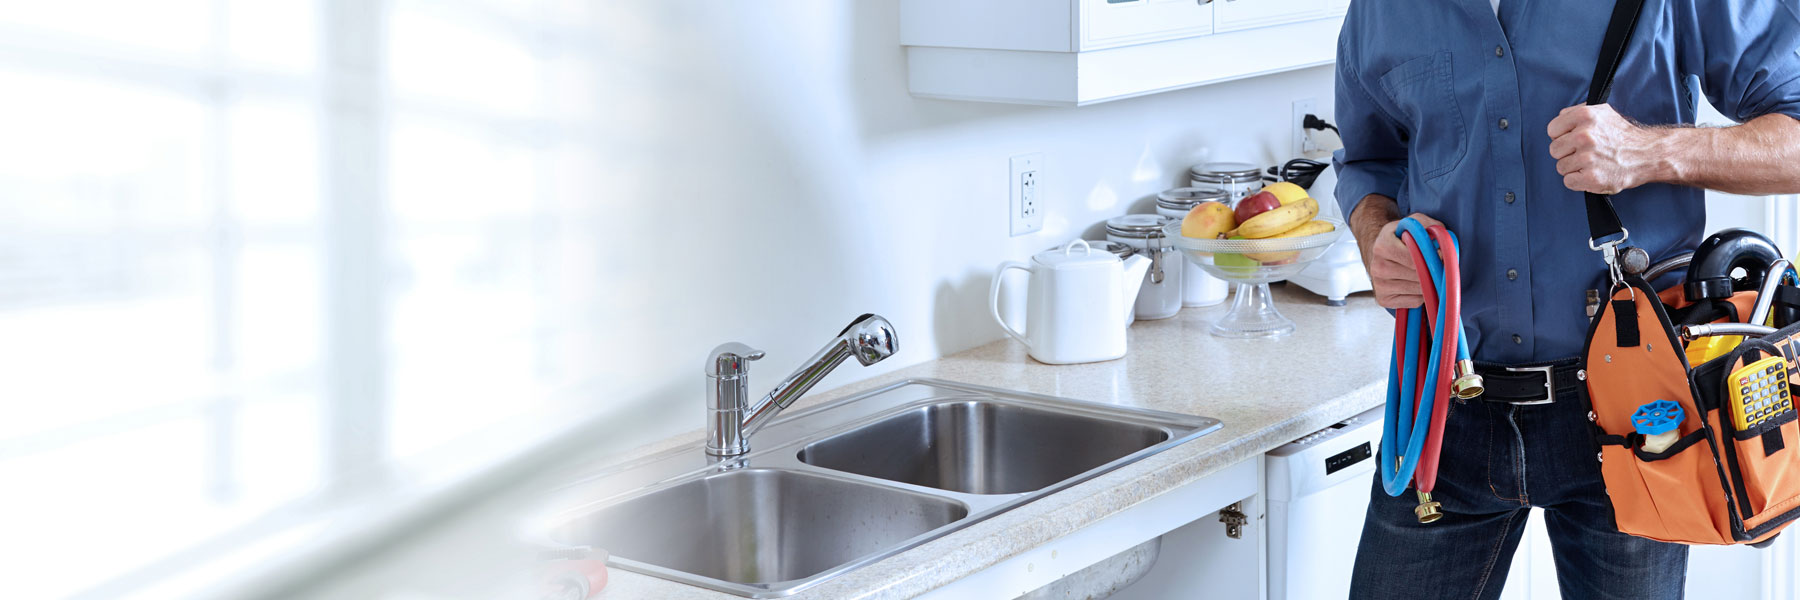 Home Remodel Plumbing Services